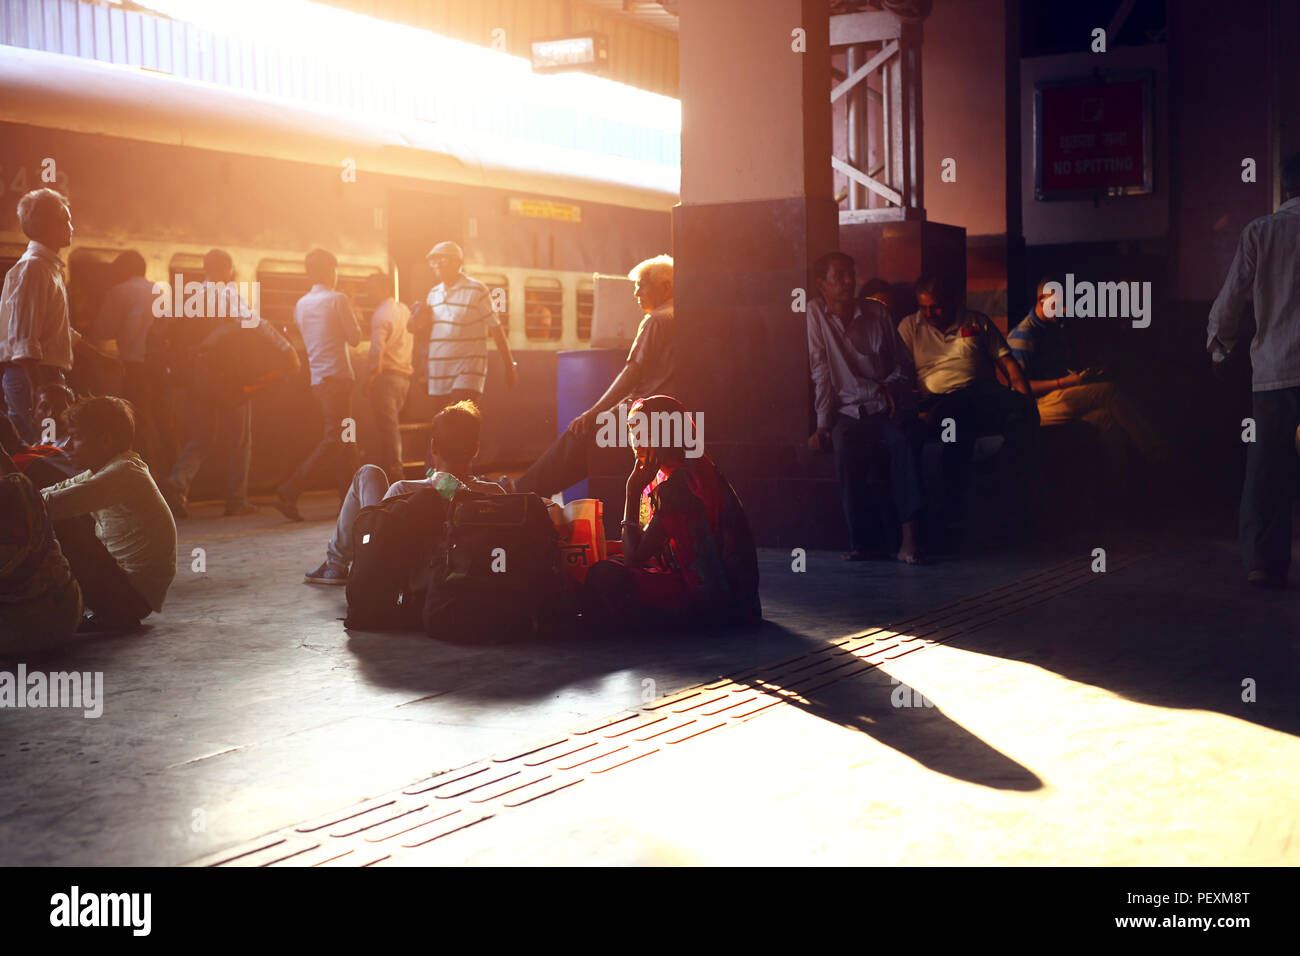 People waiting for train at station, Jaipur, Rajasthan, India - Stock Image